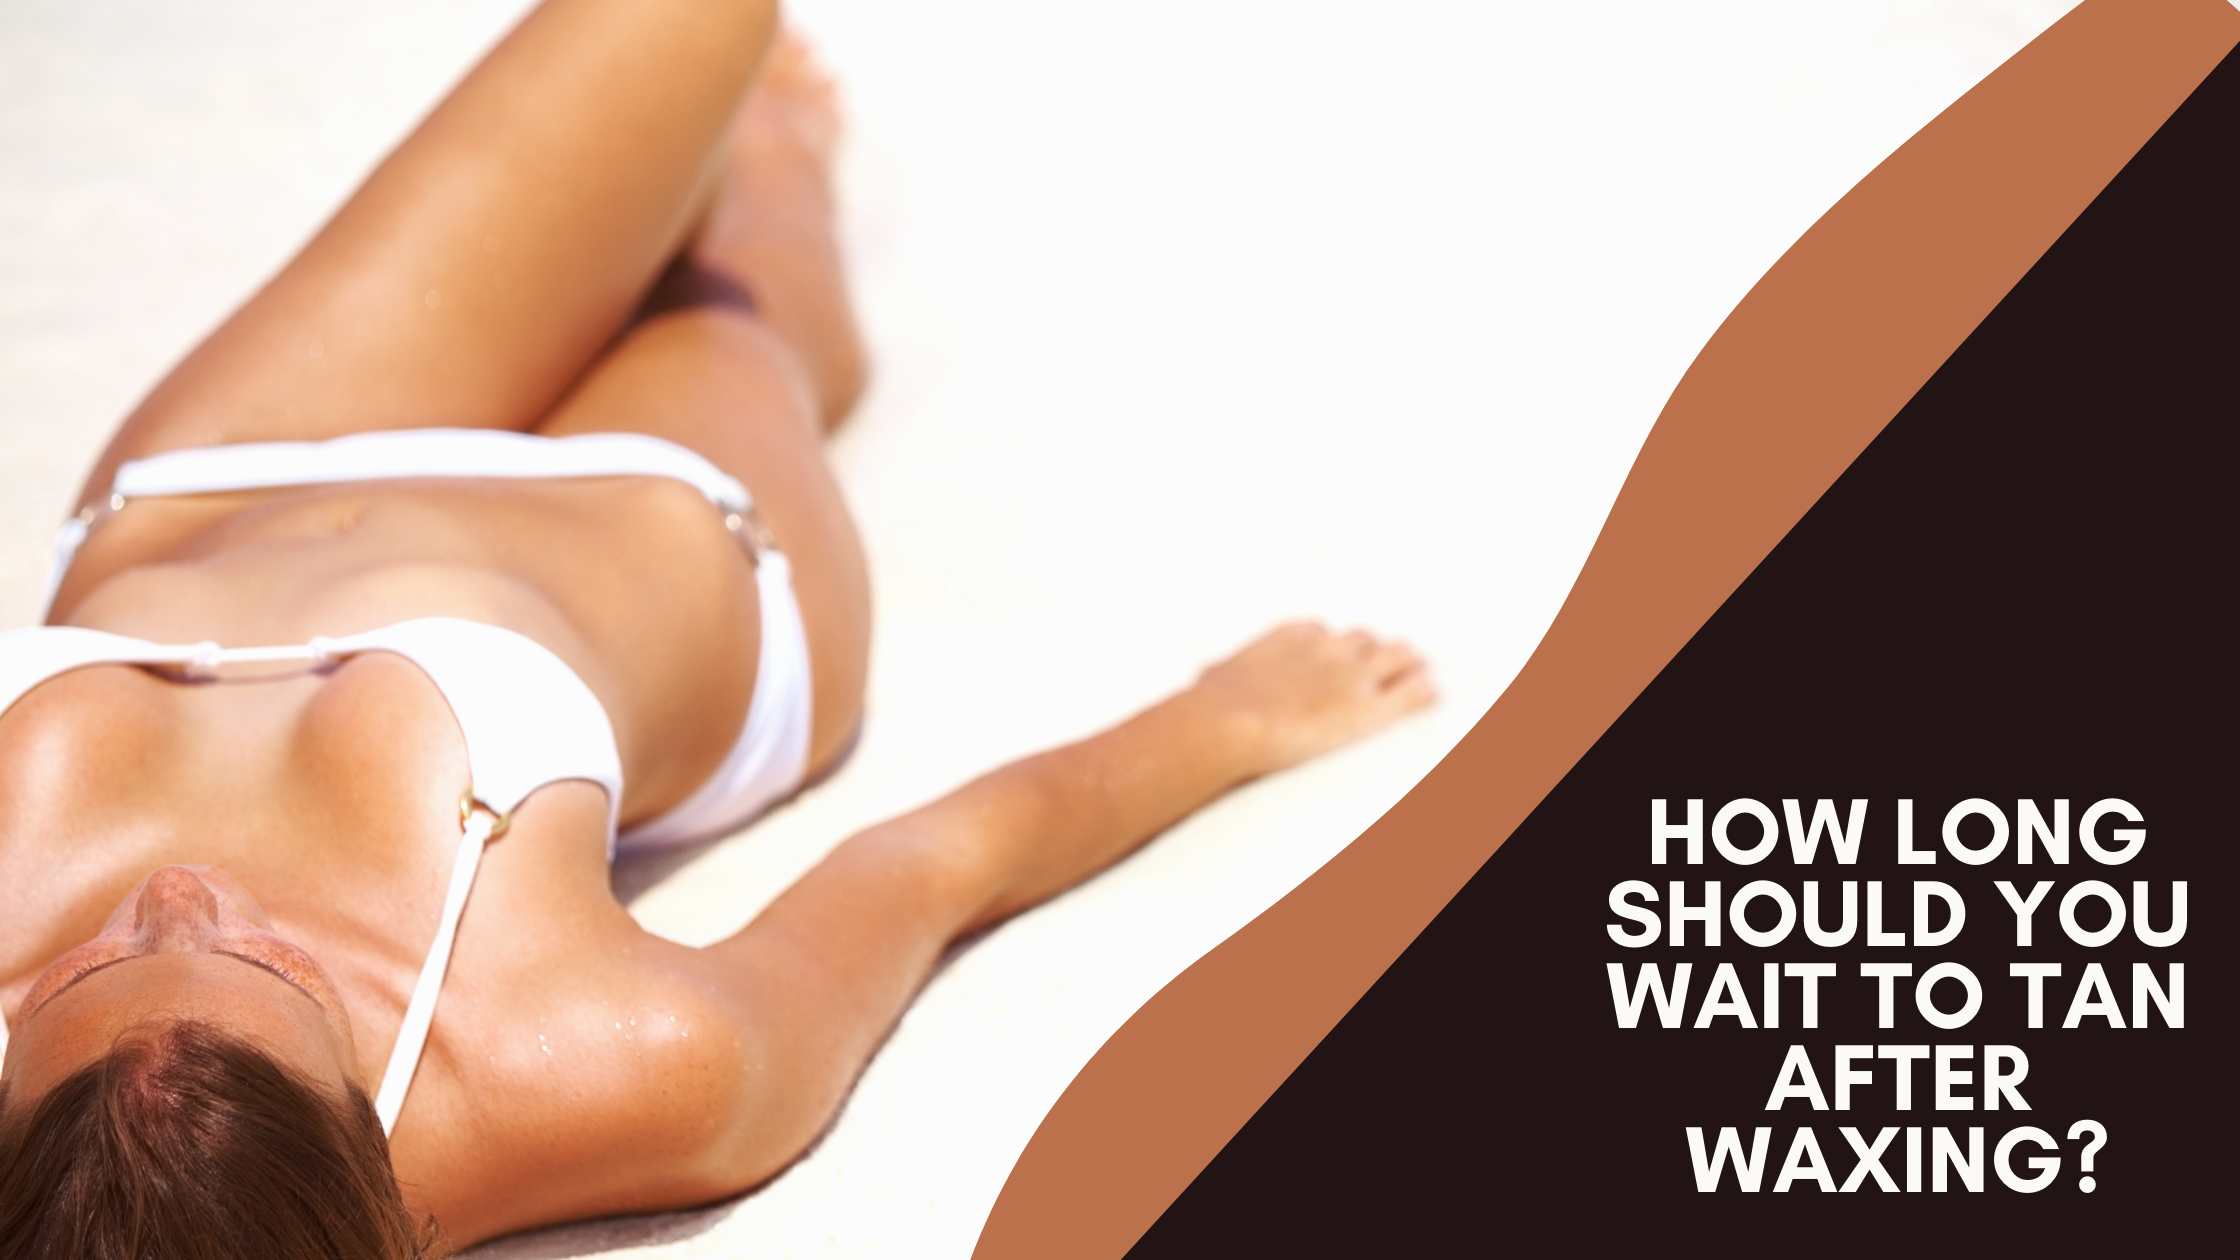 how long should you wait to tan after waxing